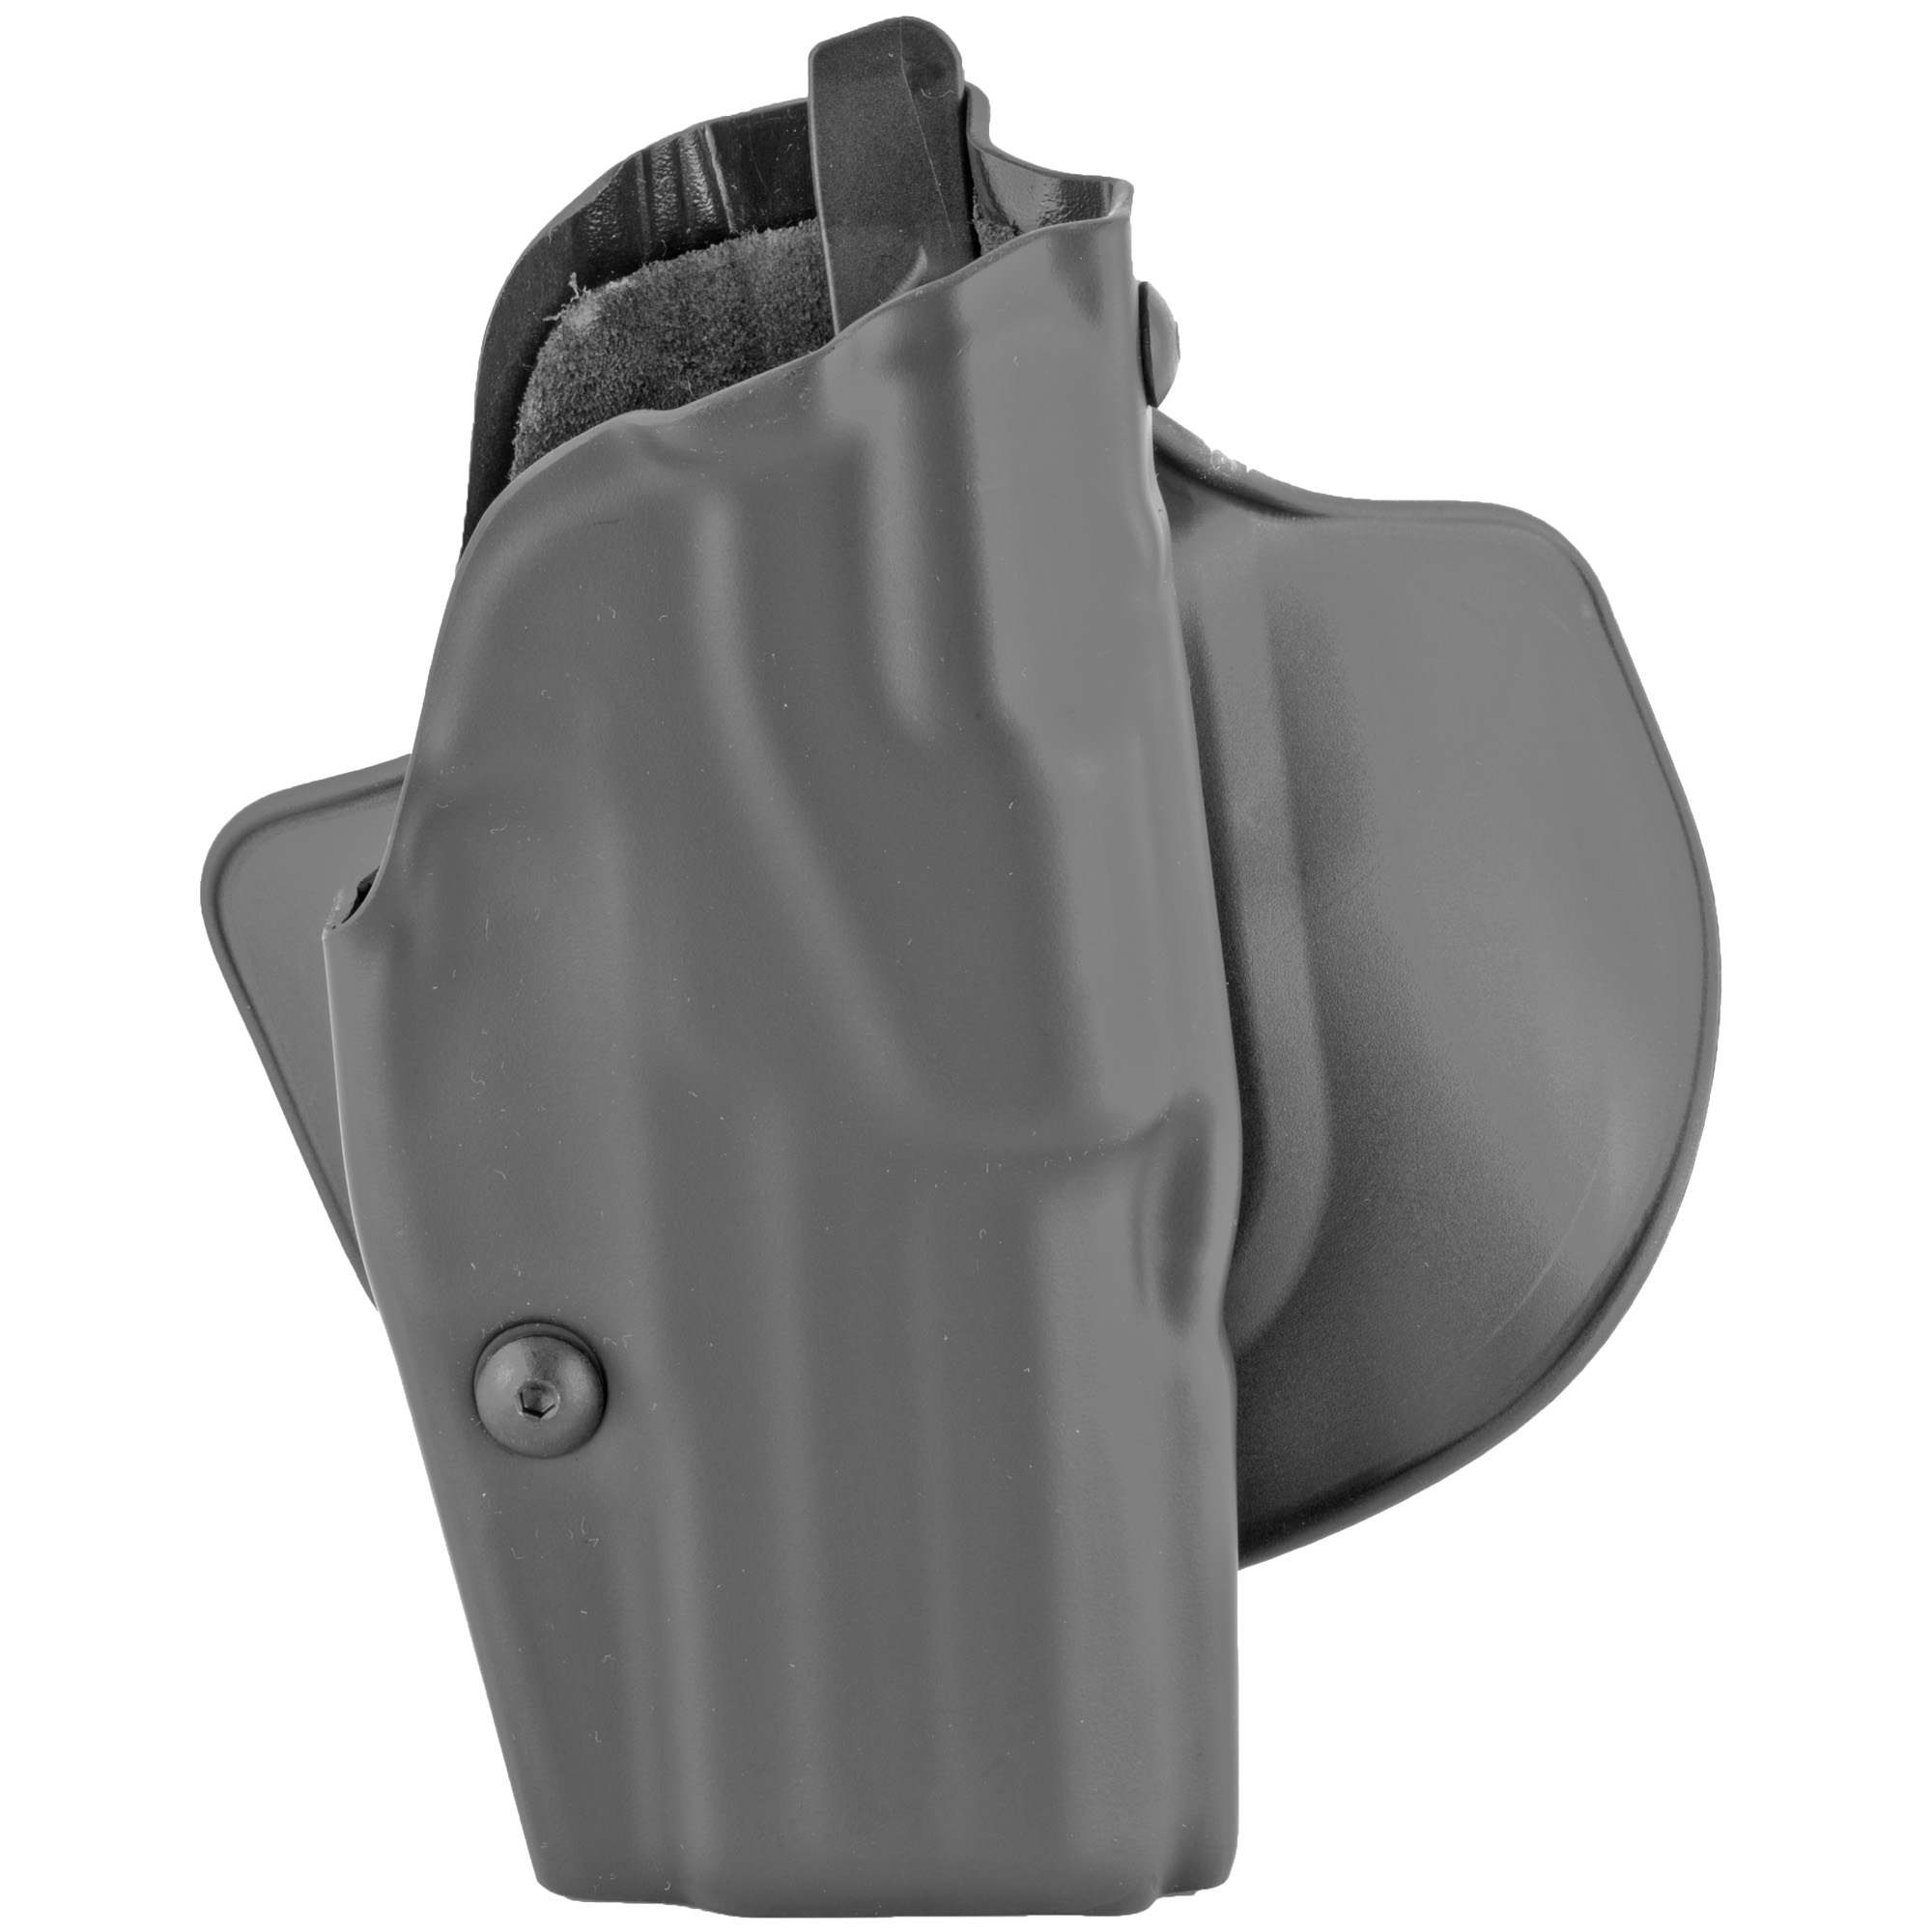 "This concealment belt slide holster with ALS(R) (Automatic Locking System) secures weapon once holstered. Simple straight up draw once release is deactivated. Open-top design without SLS for quick retrieval of weapon. Constructed of SafariSeven(TM)"" a proprietary nylon blend that is completely non-abrasive to a firearm's finish."